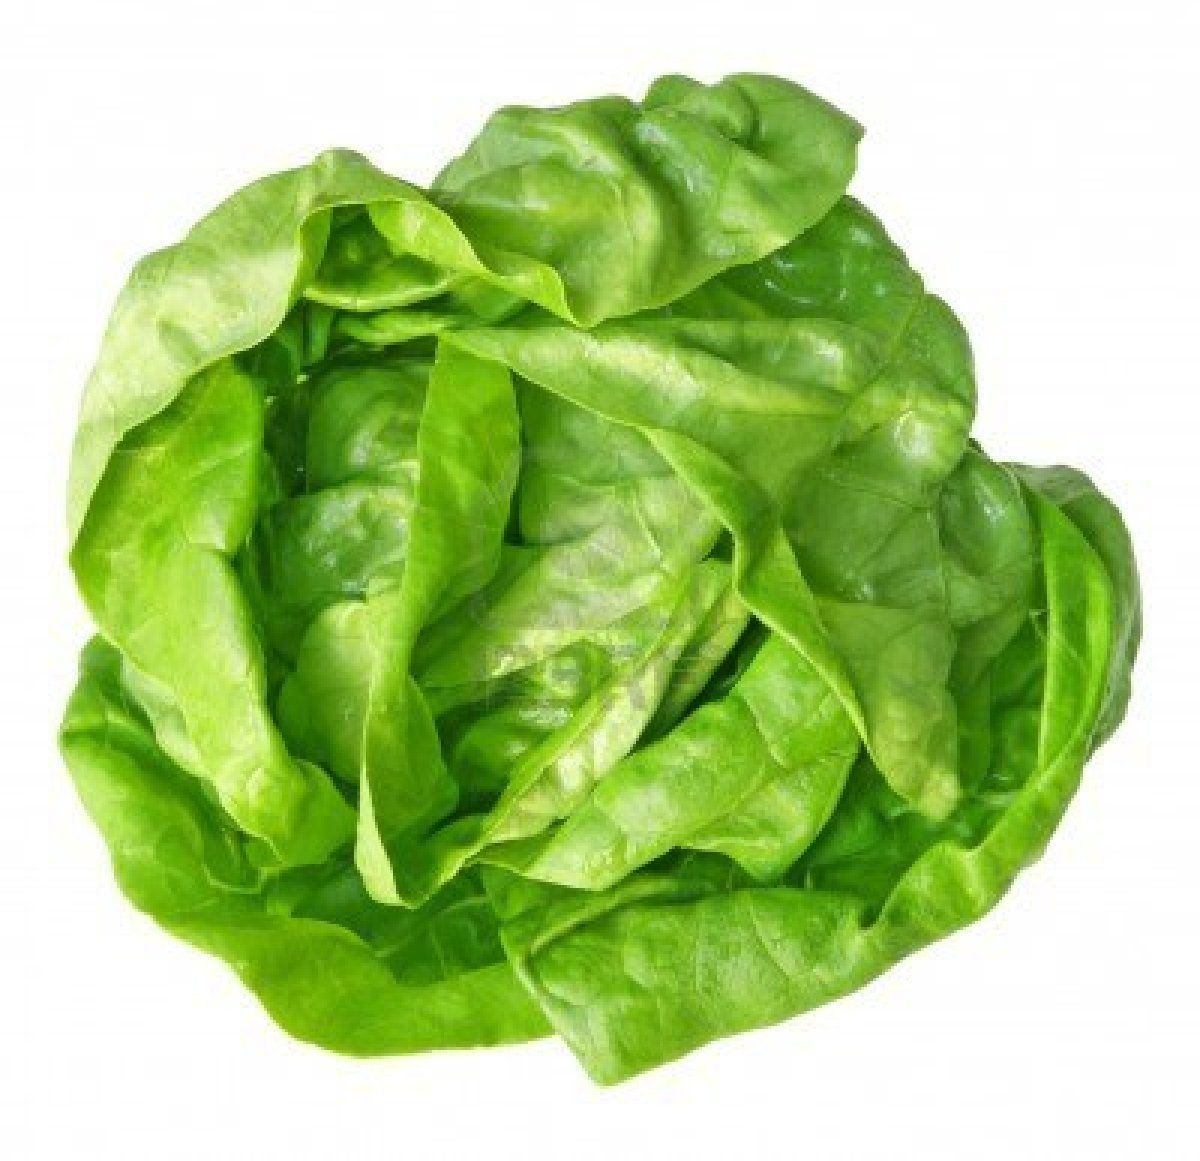 Lettuce free download clip art on clipart library.